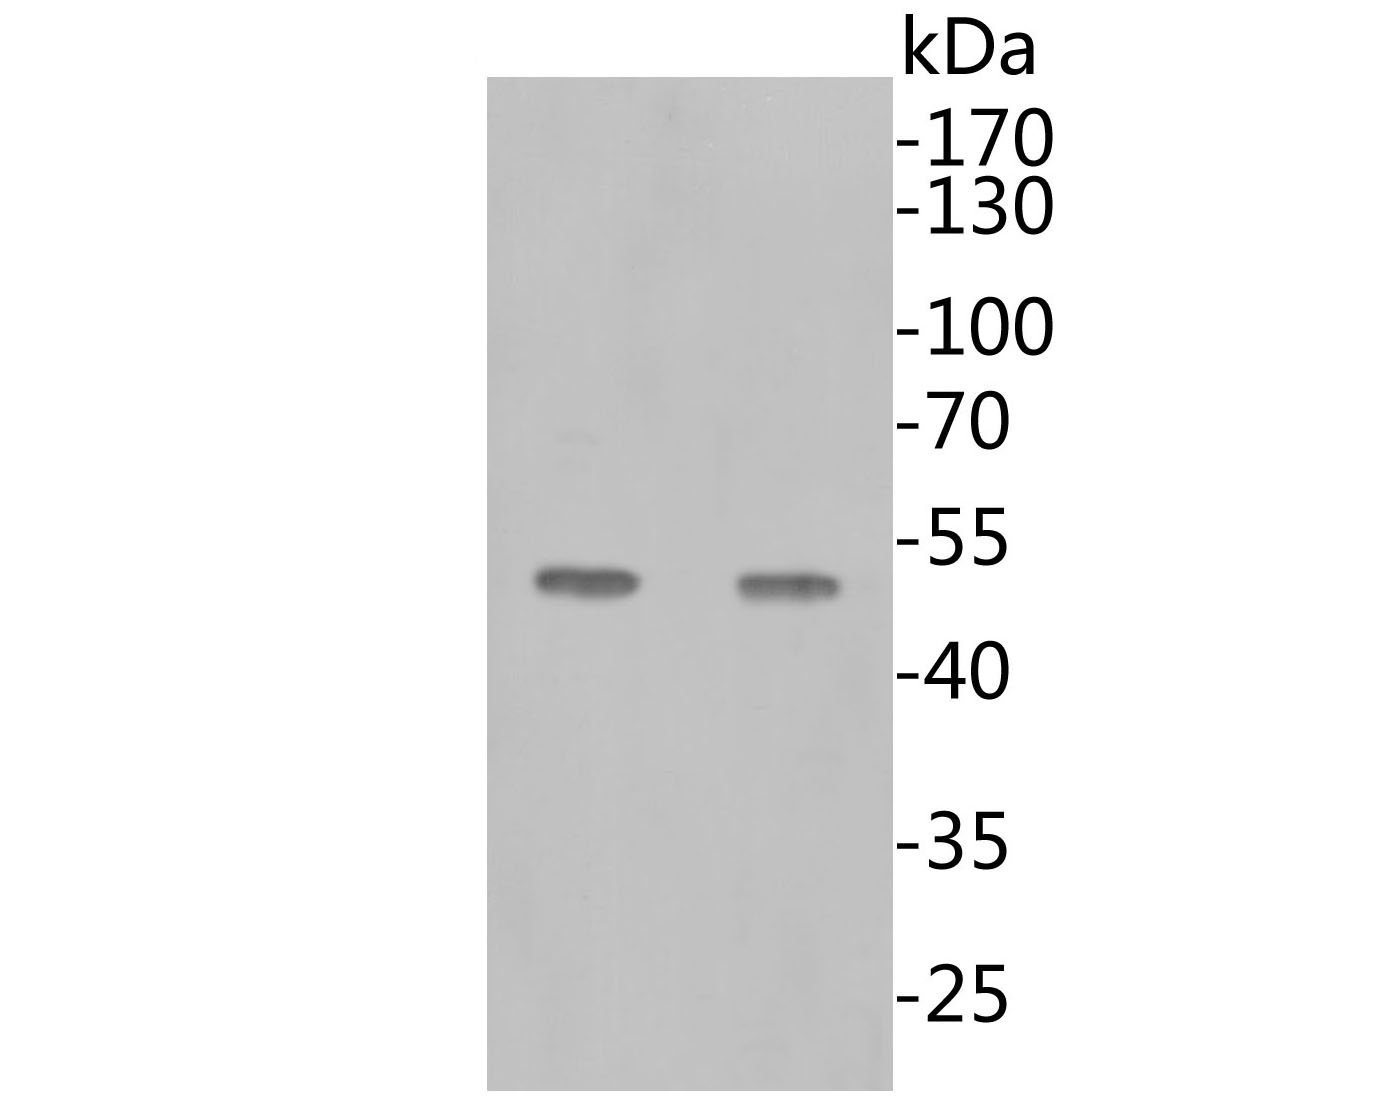 Western blot using anti-SARS-CoV-2 Nucleocapsid Protein antibody shows detection of a 48 kDa band corresponding to the protein.